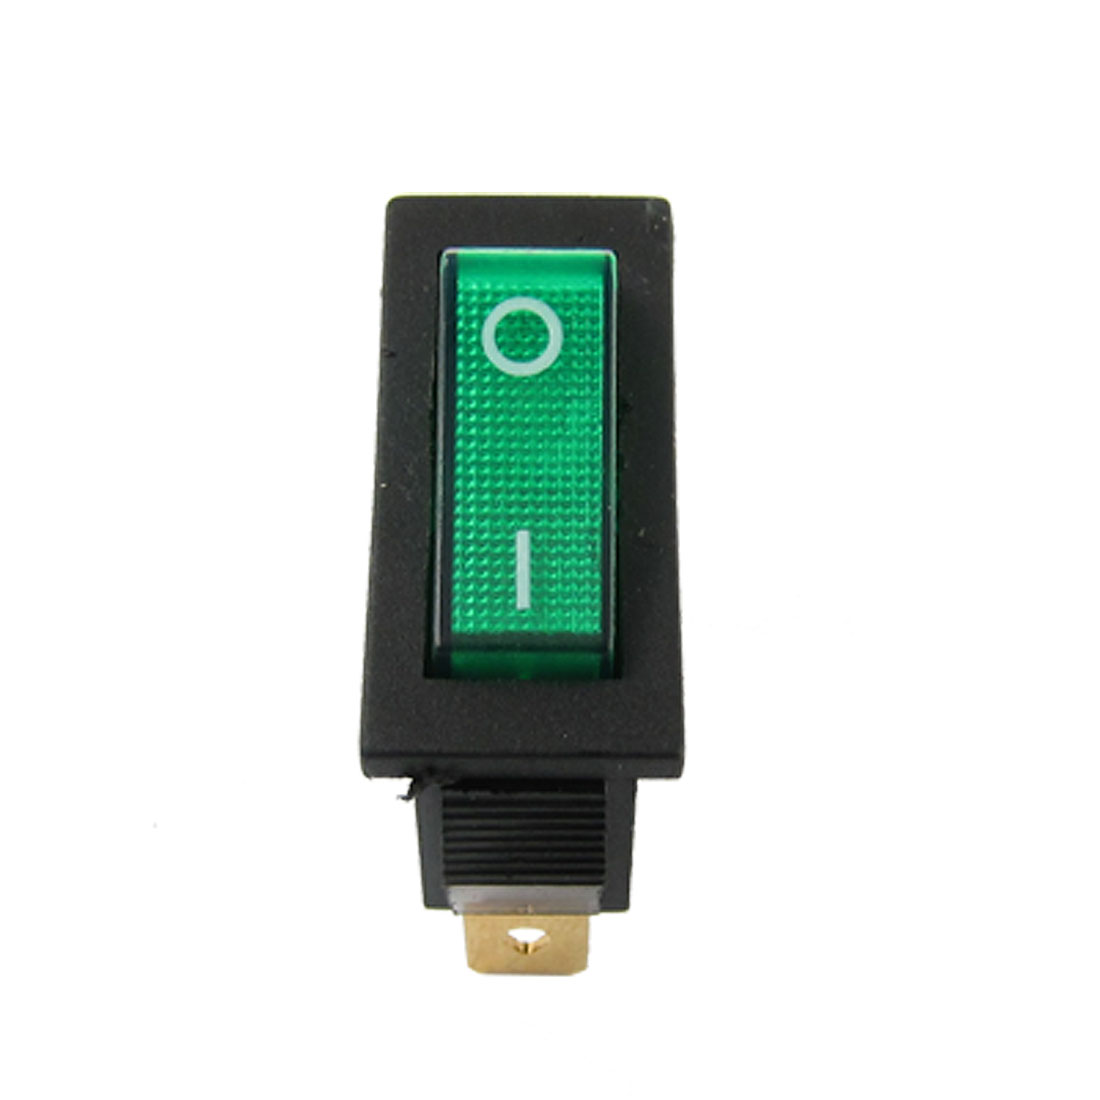 AC 16A/250V Green Light Illuminated ON-OFF 2 Position SPST Snap in Rocker Switch